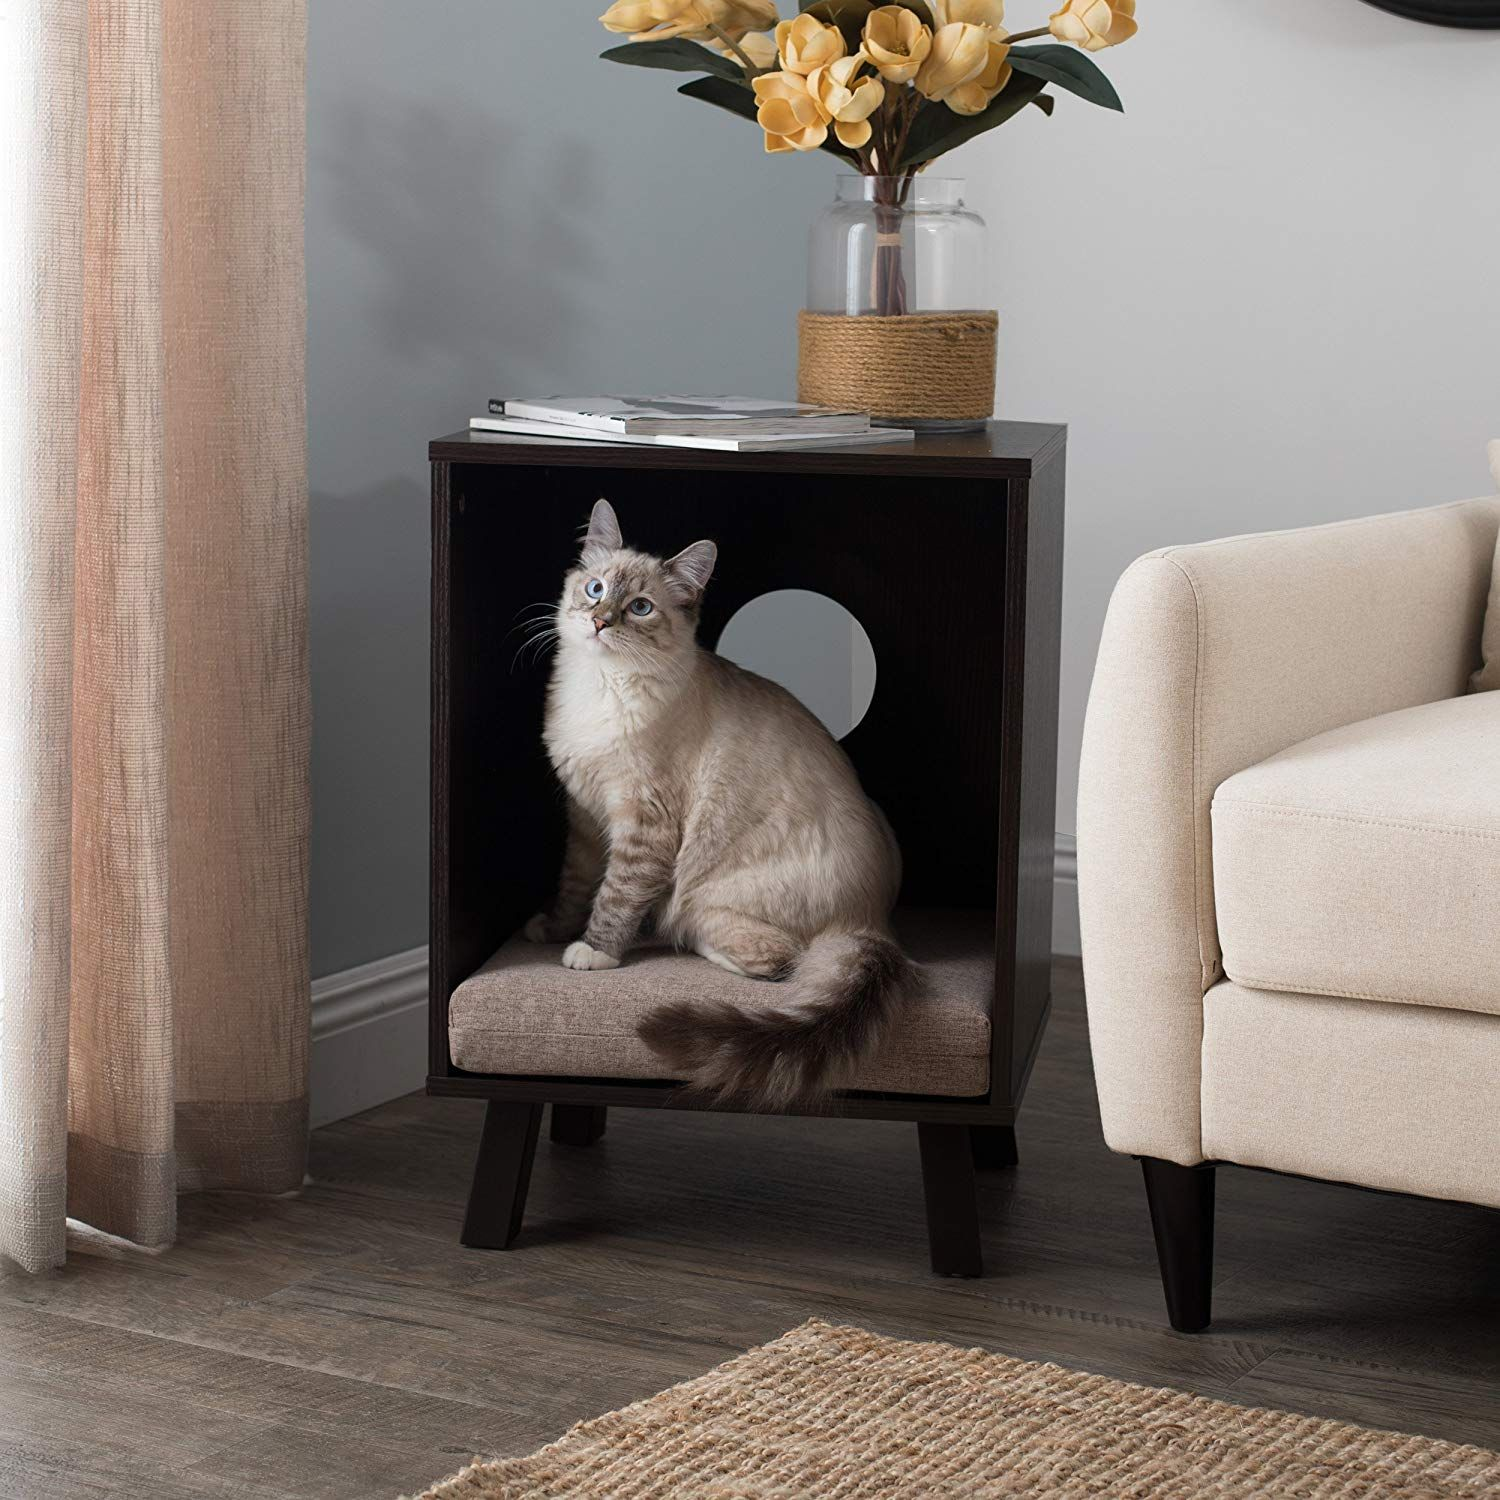 10 Pet Furniture Ideas That Will Fit Seamlessly in Any